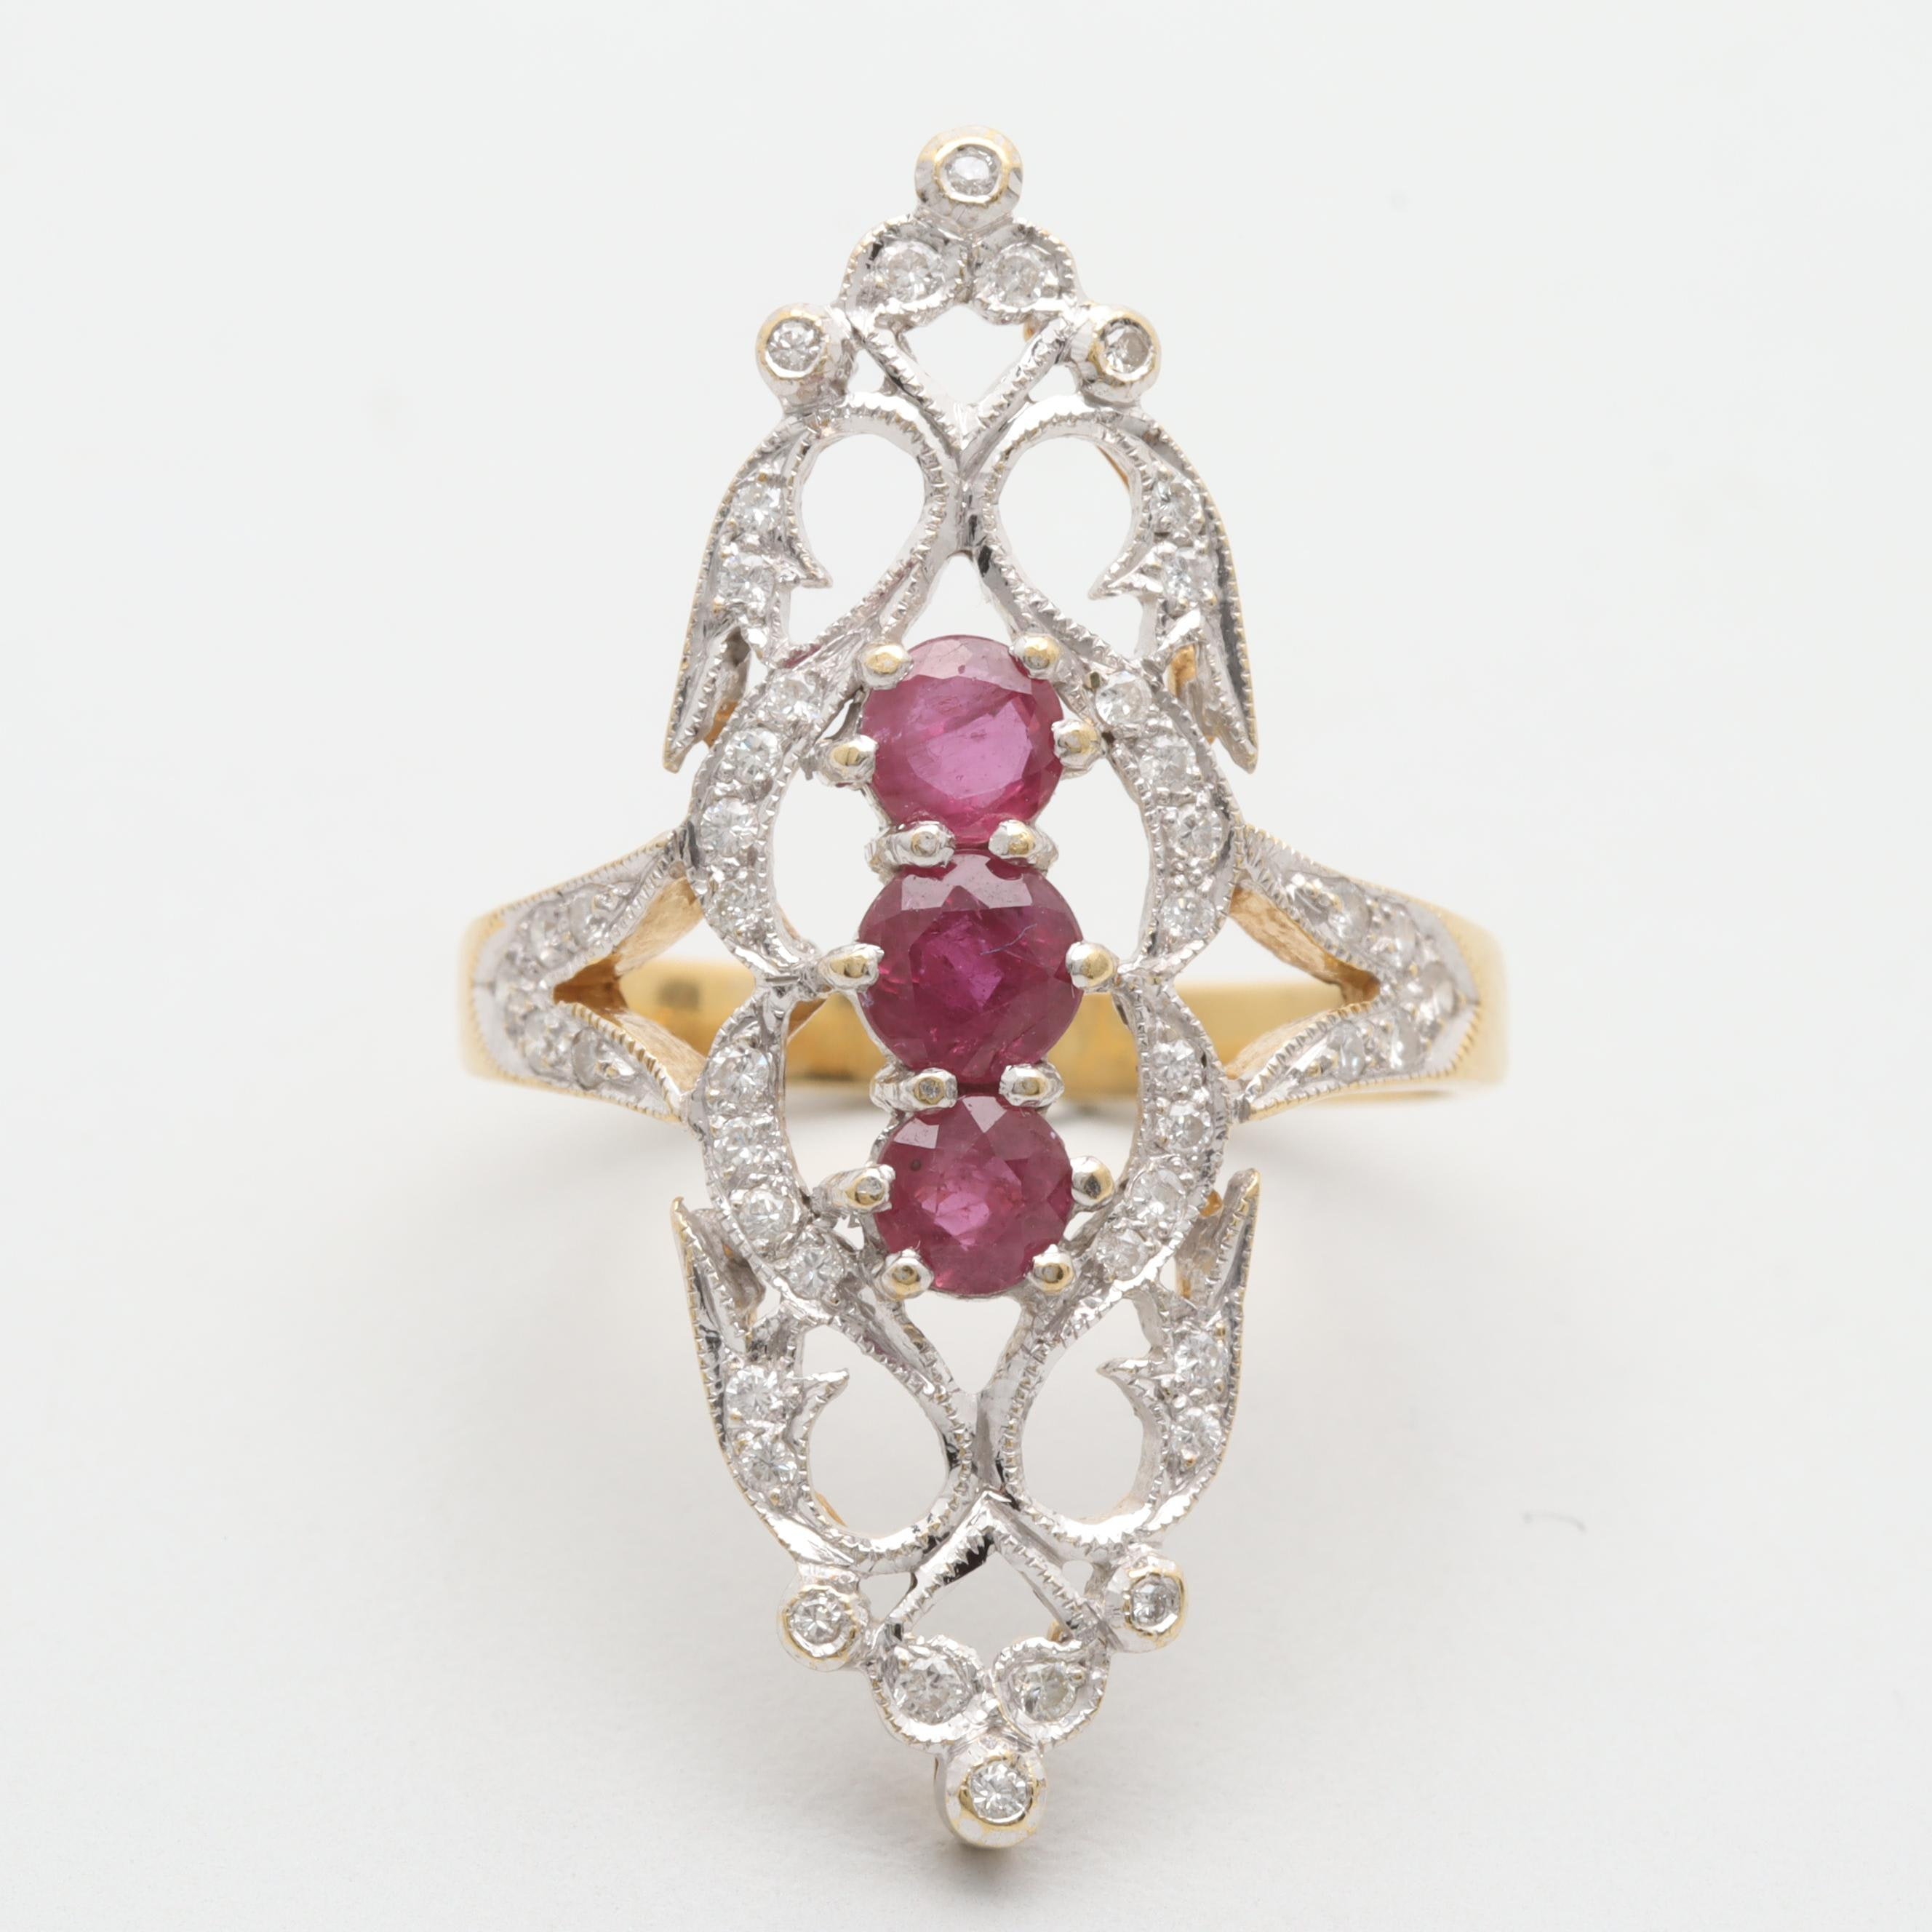 18K Yellow and White Gold Ruby and Diamond Ring